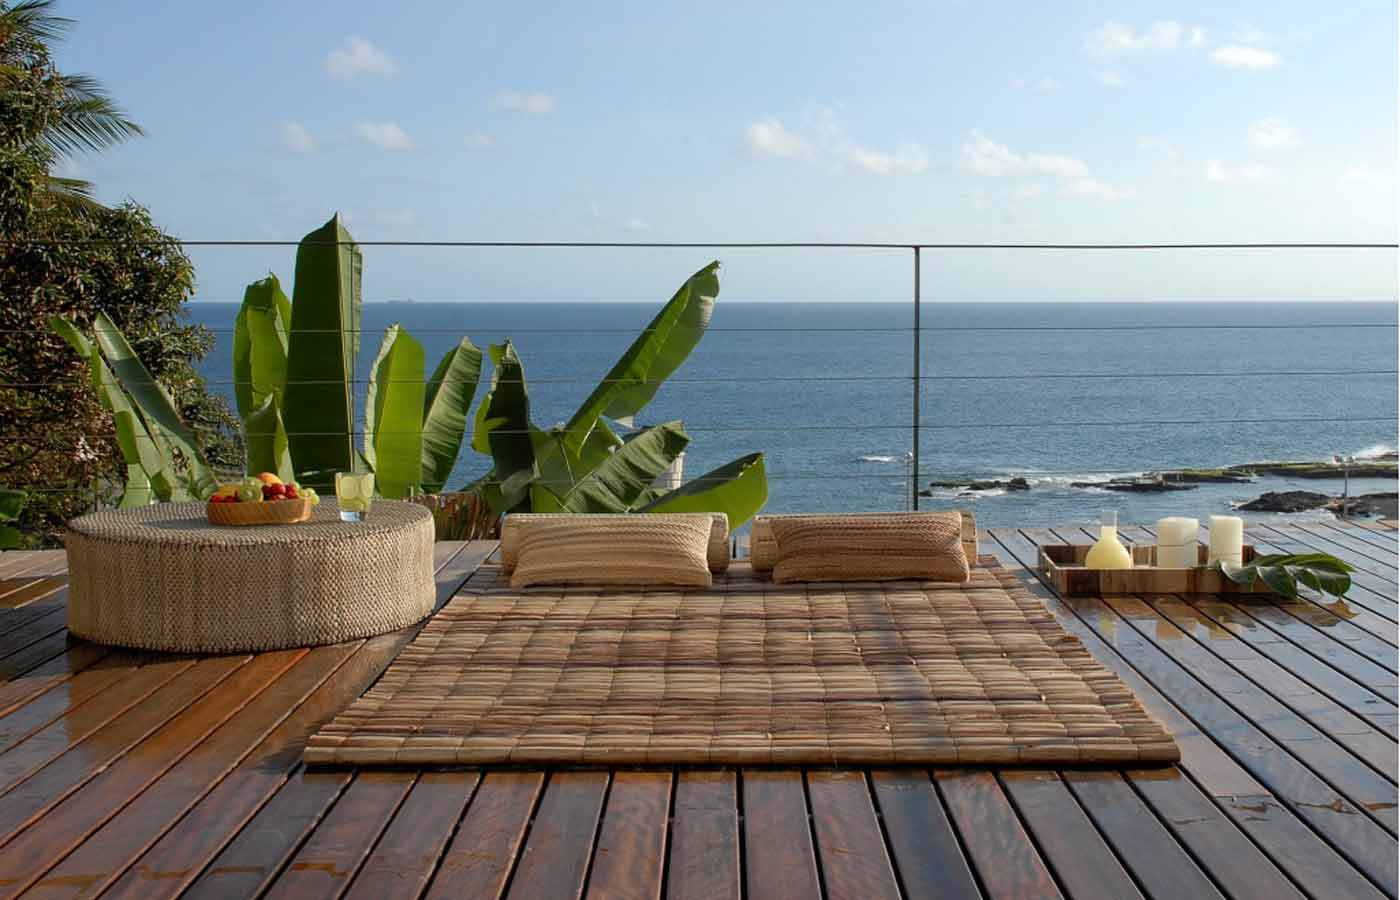 Zank Boutique Hotel - Luxury holidays to Salvador, Brazil